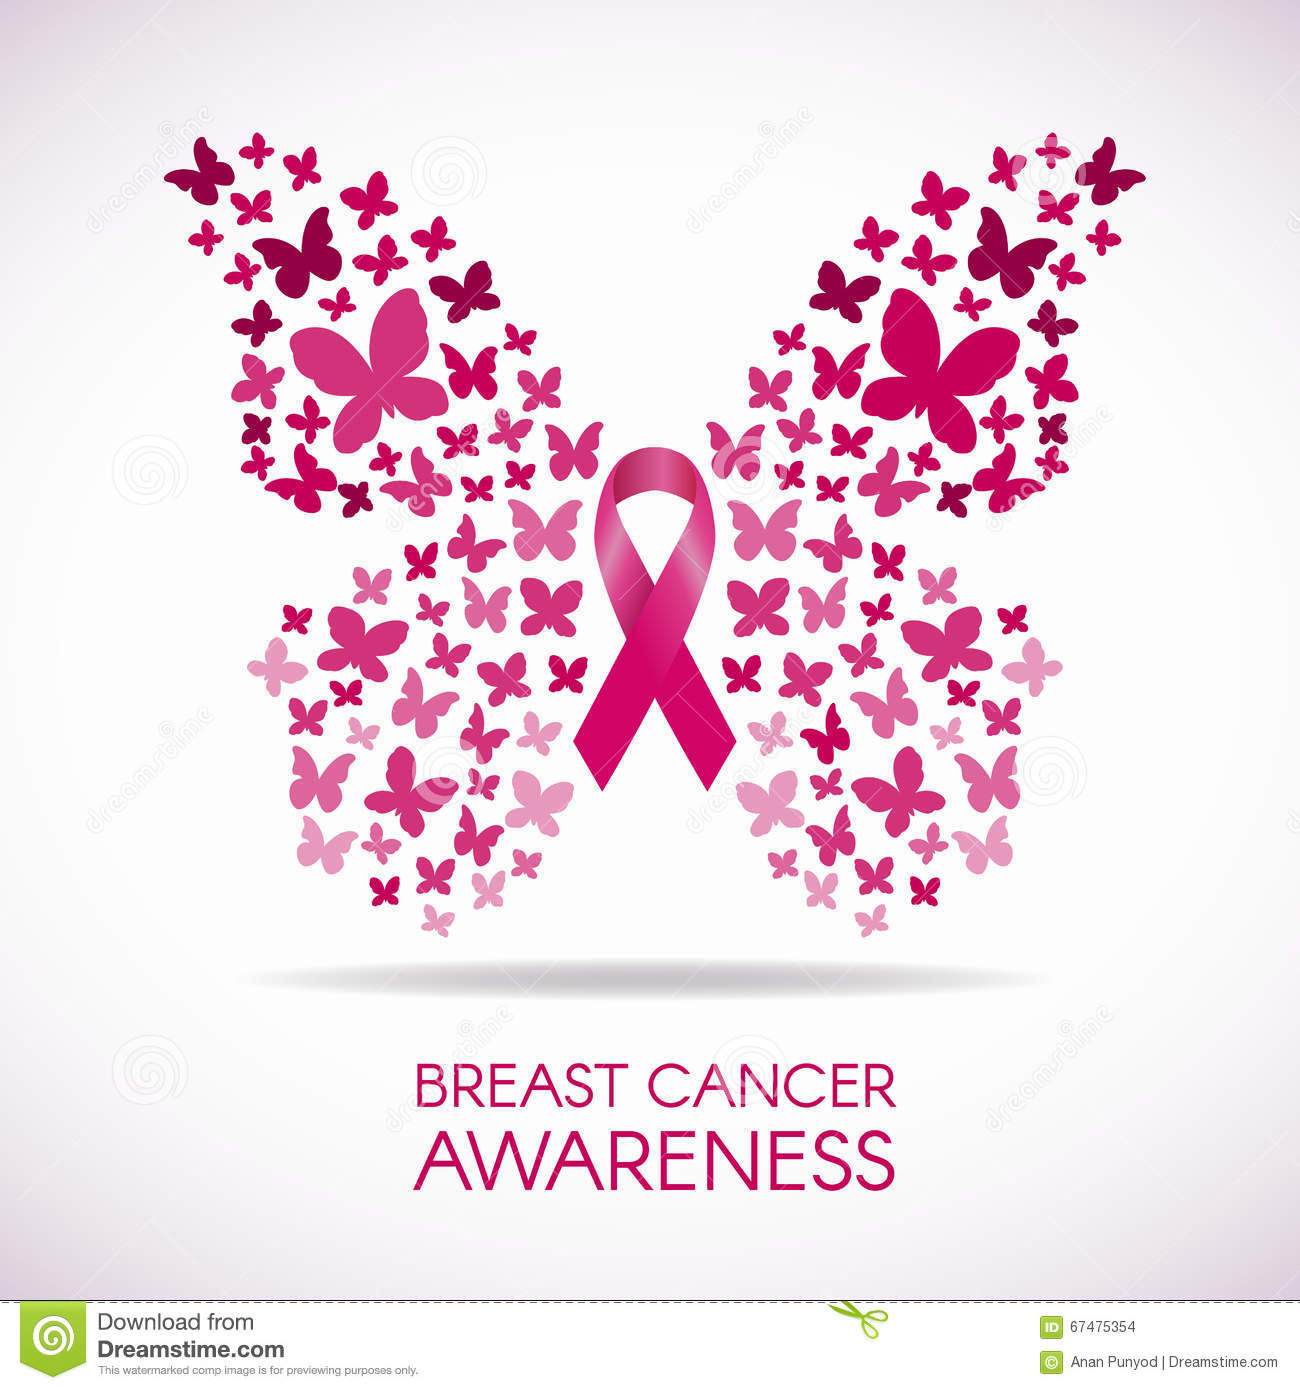 Breast cancer awareness illustrations